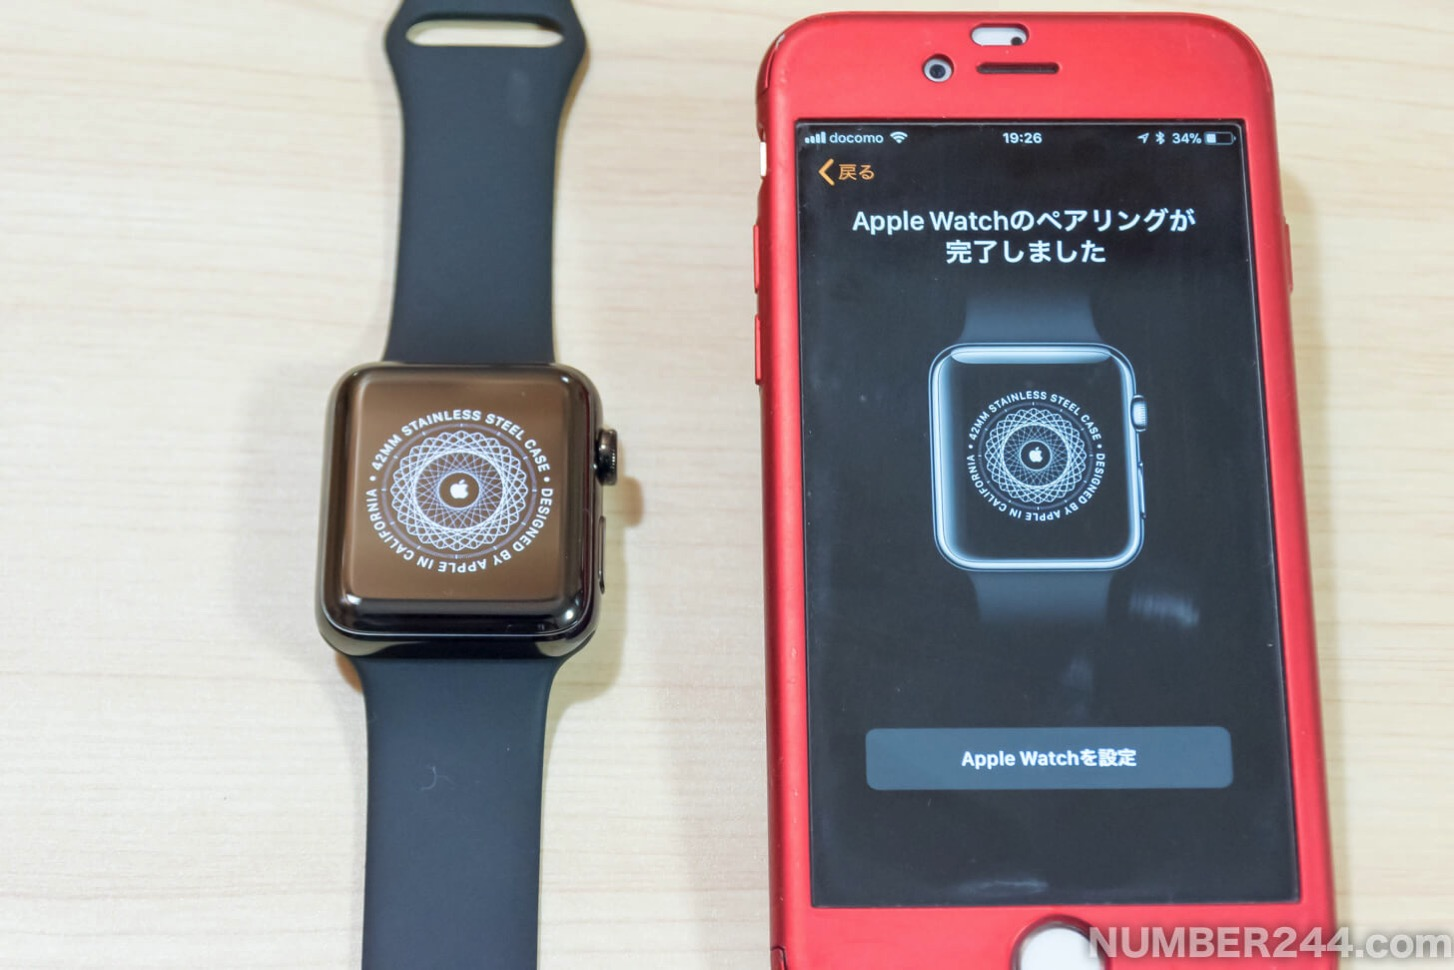 Initial setting of Apple Watch 5